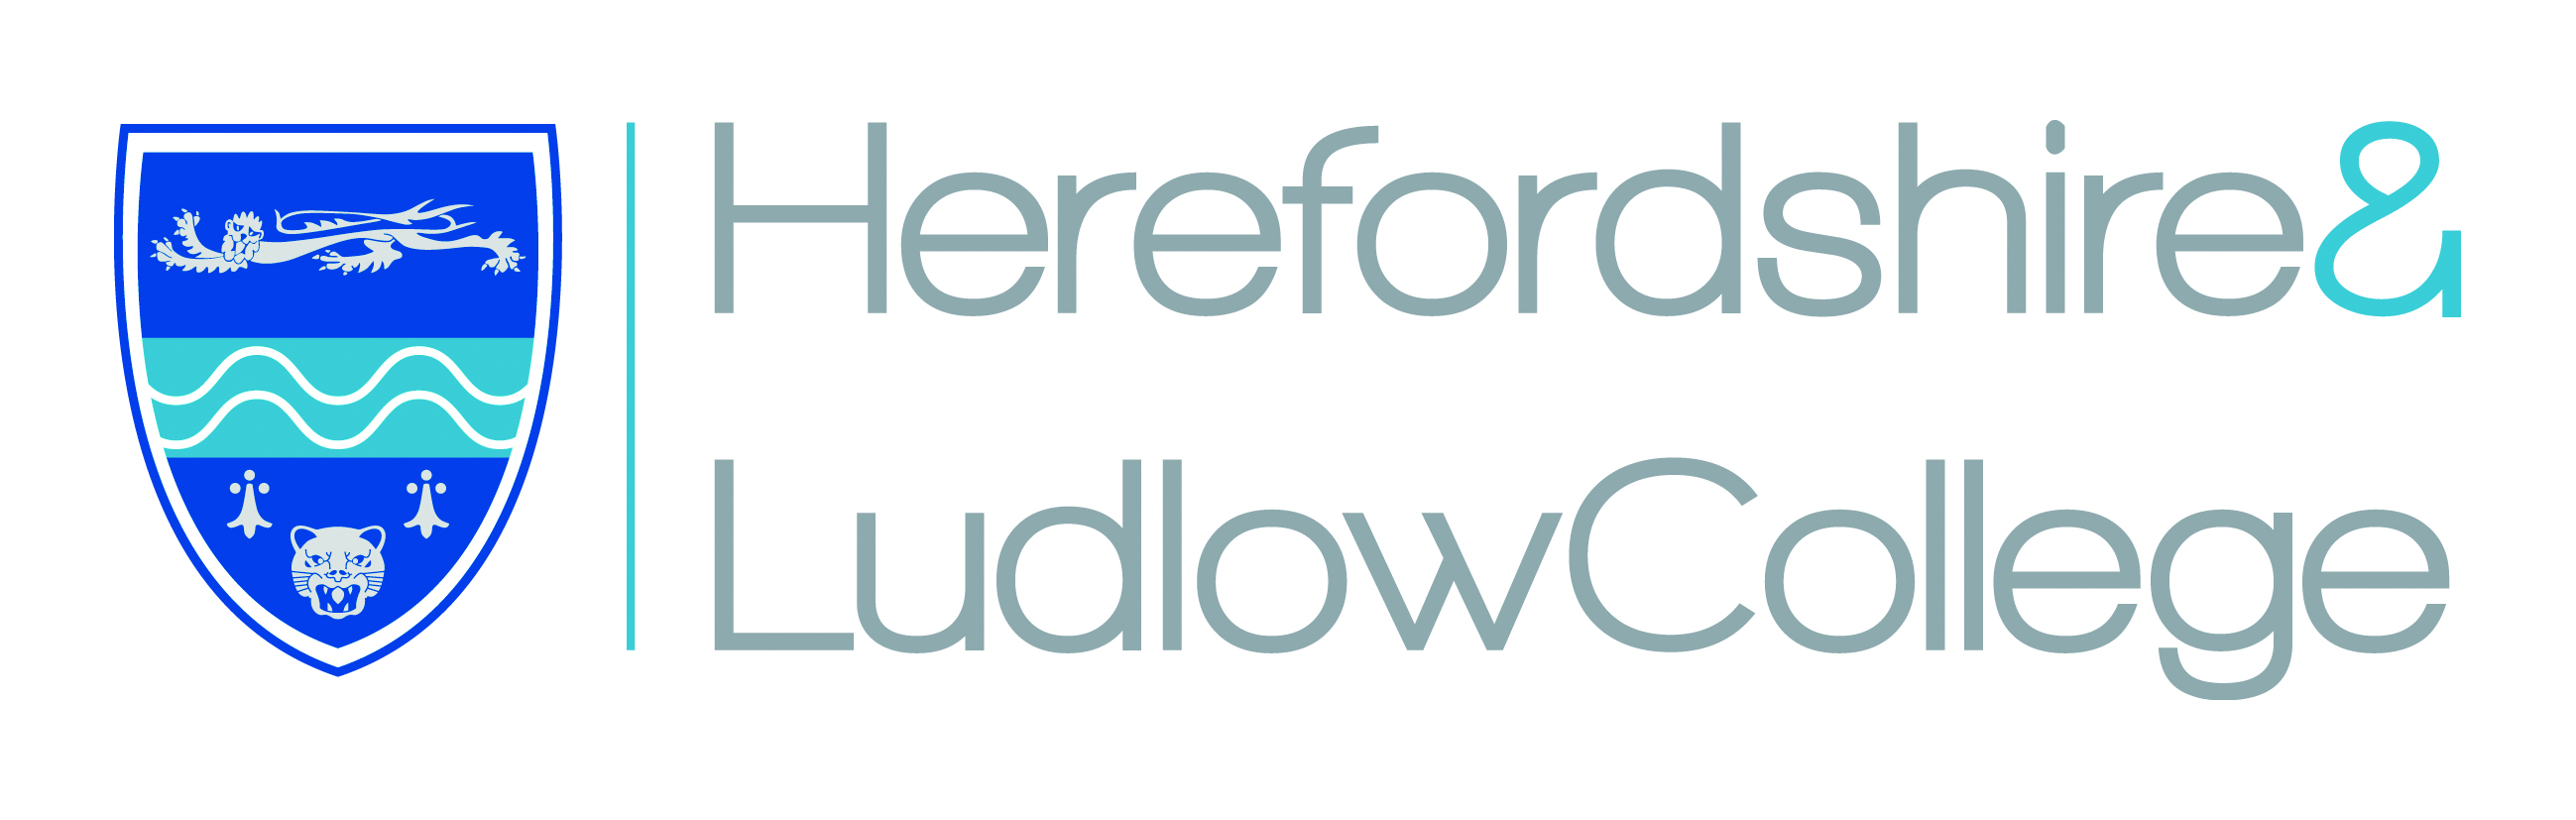 Herefordshire and Ludlow College - Shropshire